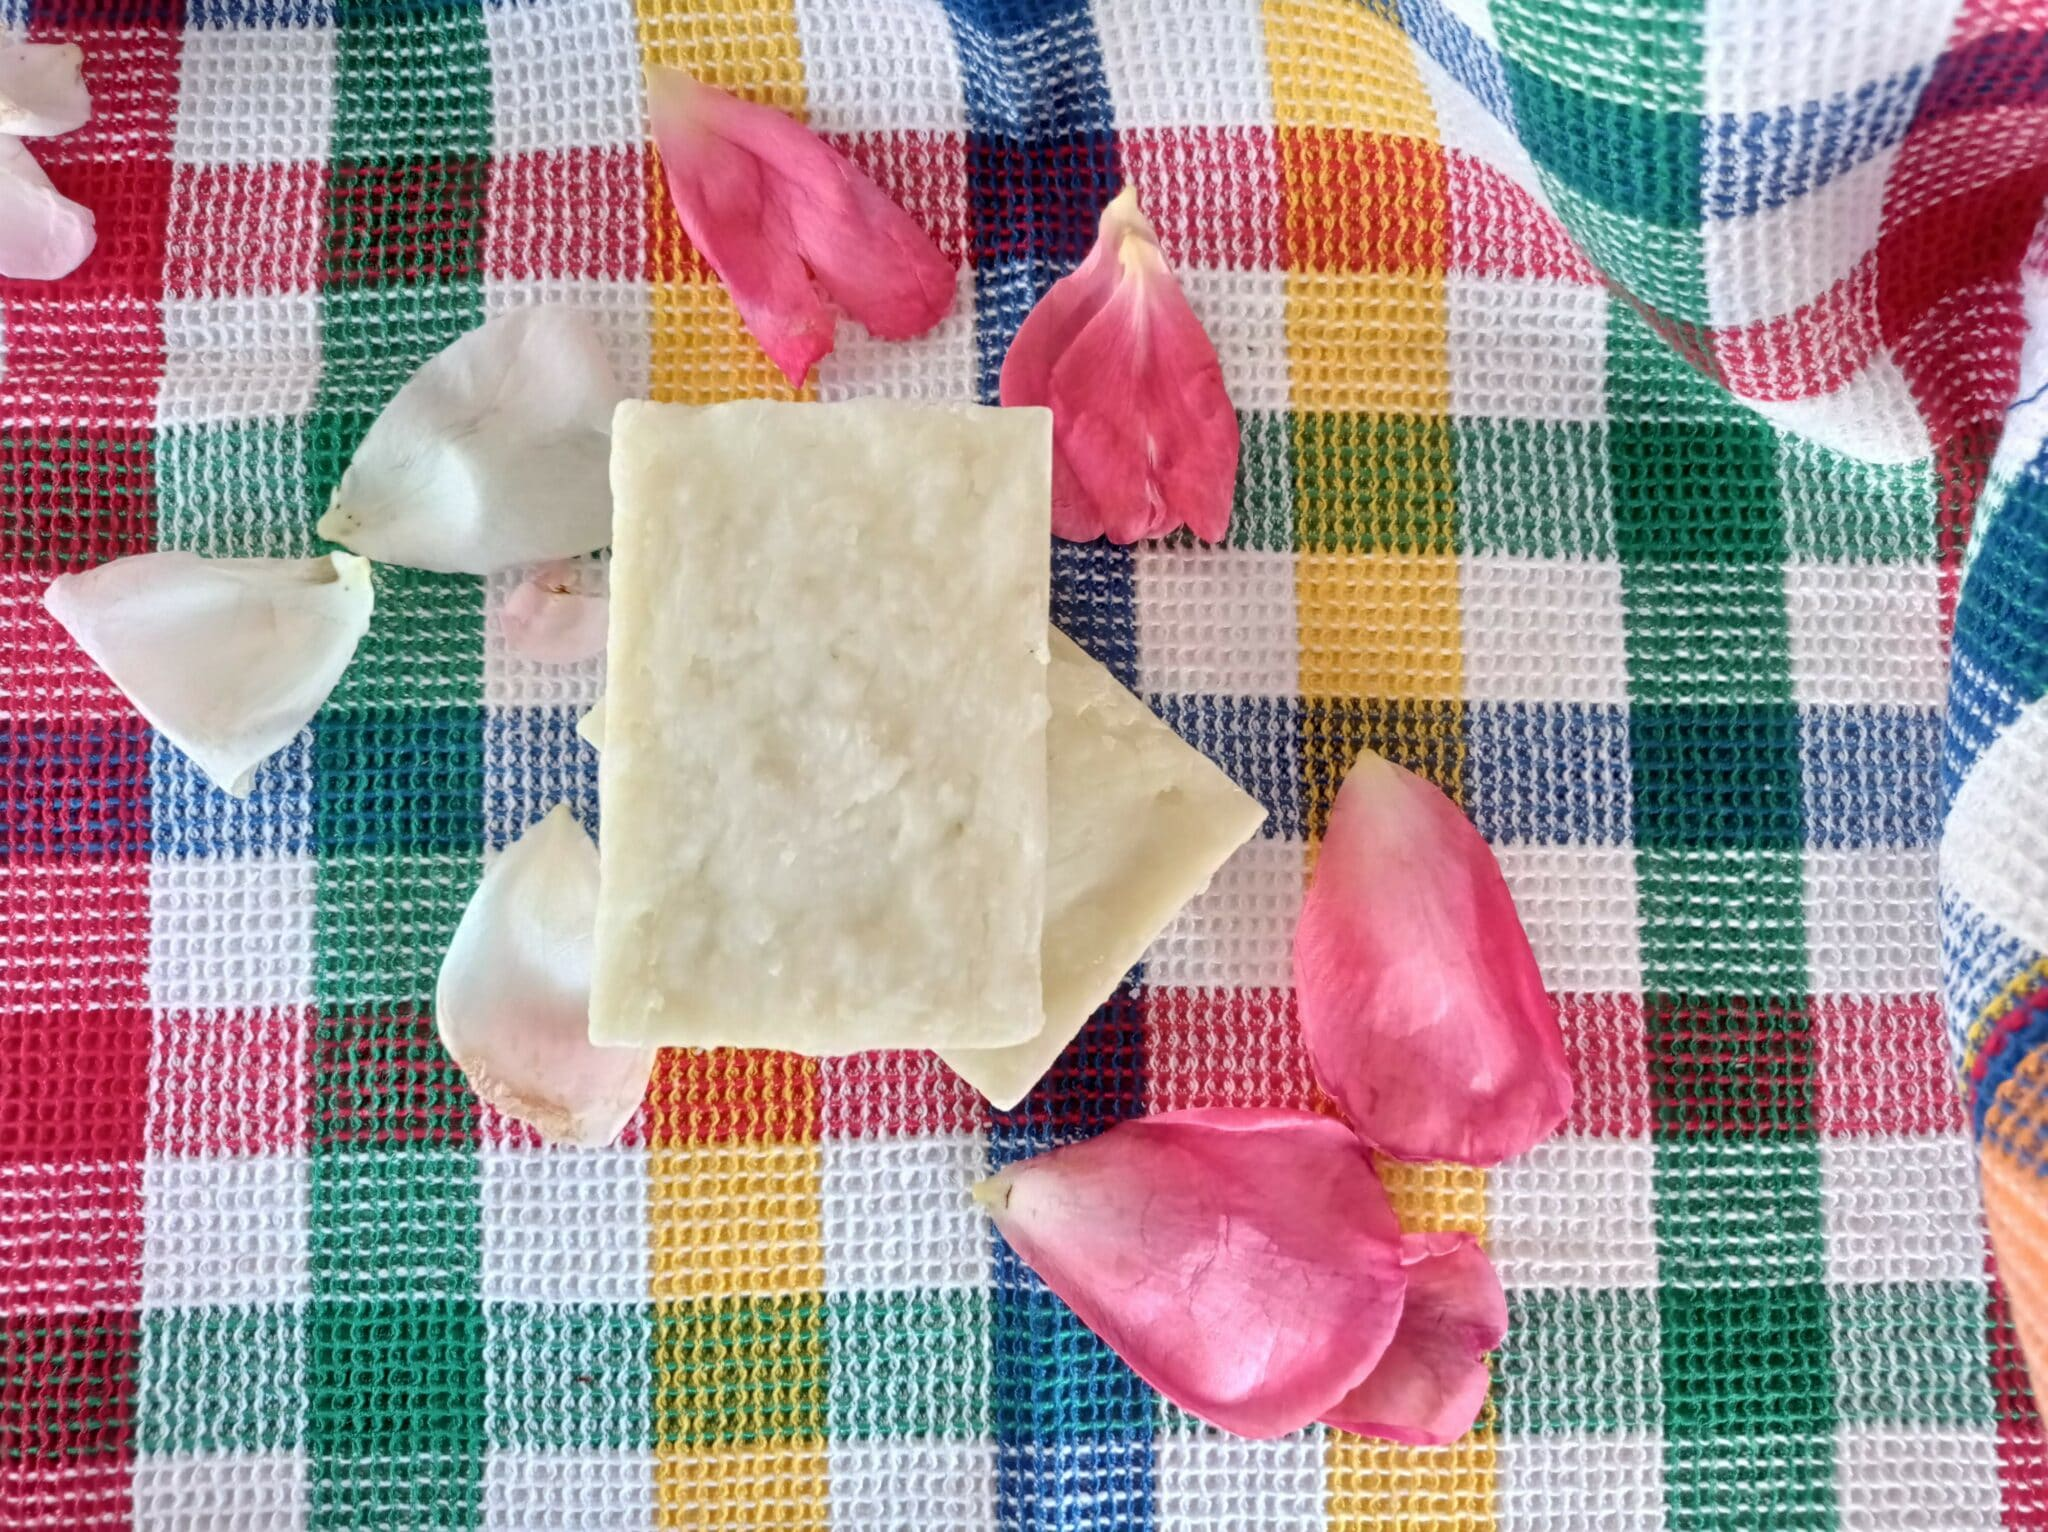 Two bars of white homemade intimate soap for women, scented with tea tree, decorated with rose petals